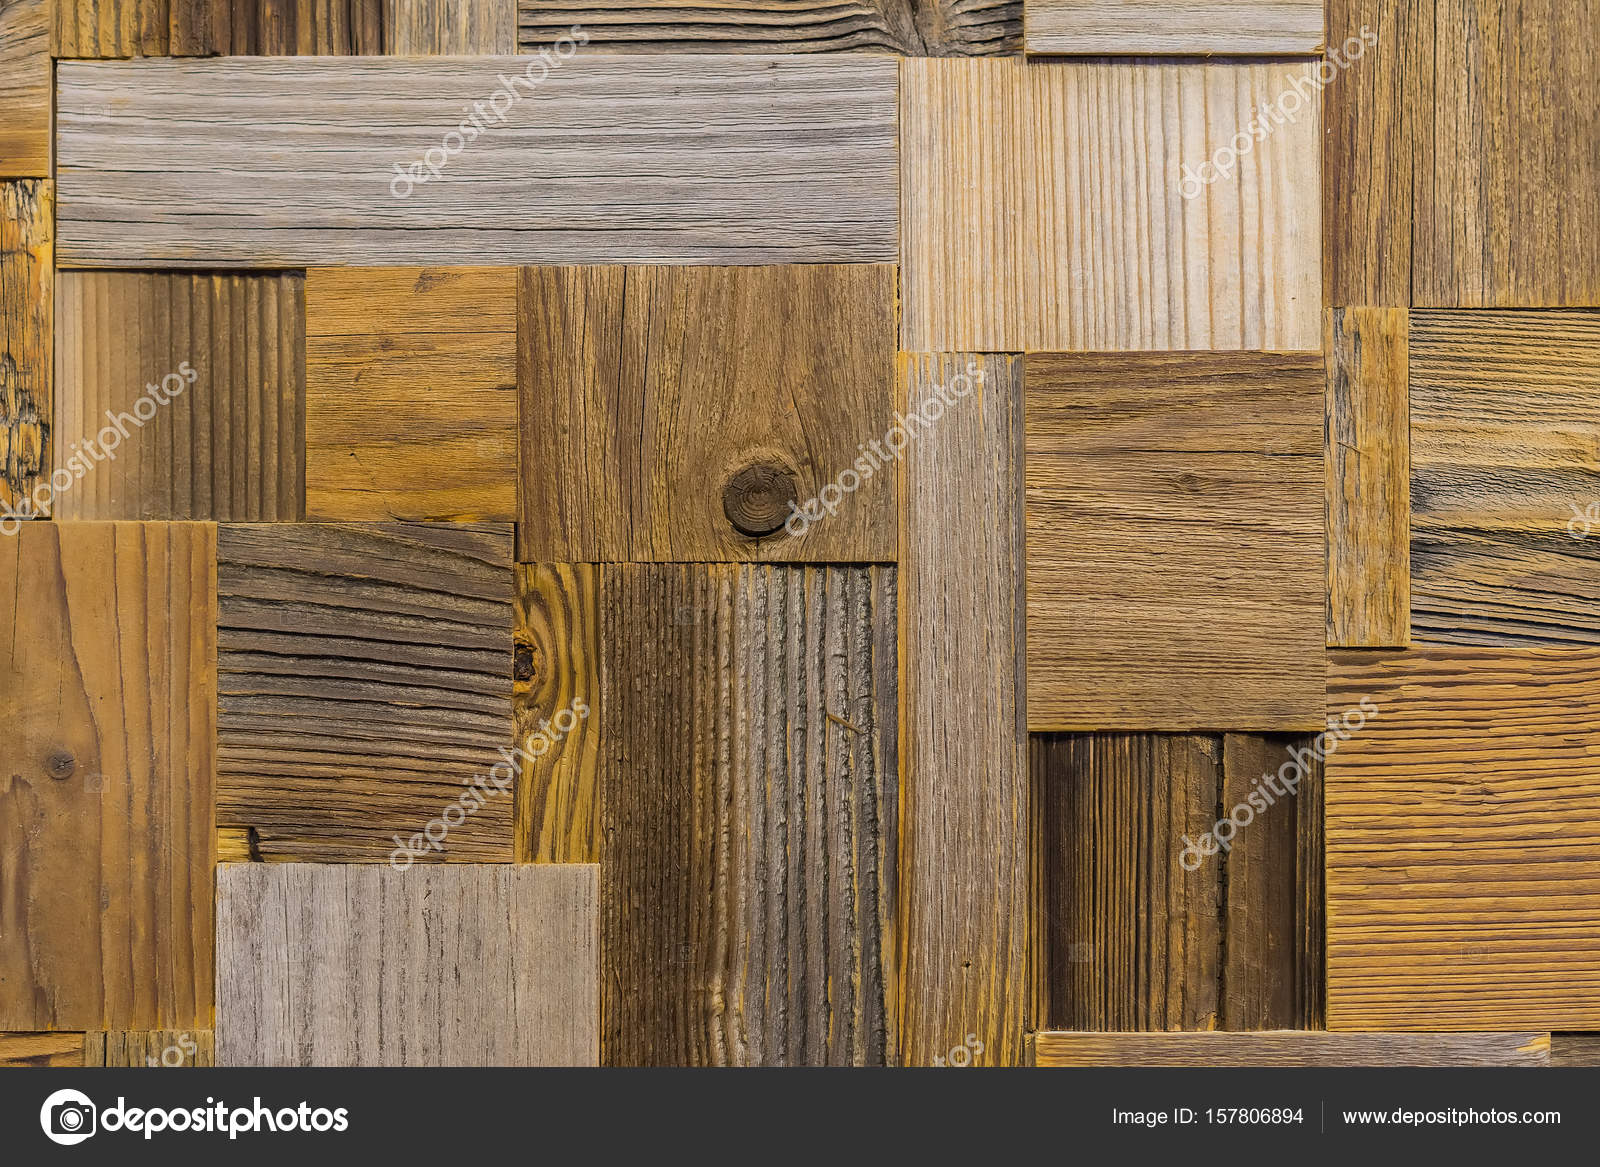 Old vintage white natural wood or wooden texture background or - Background From Different Rectangle Ecological Old Shabby Wood Tiles Wooden Texture With Scratches And Cracks Creative But Natural Backdrop As Basis For